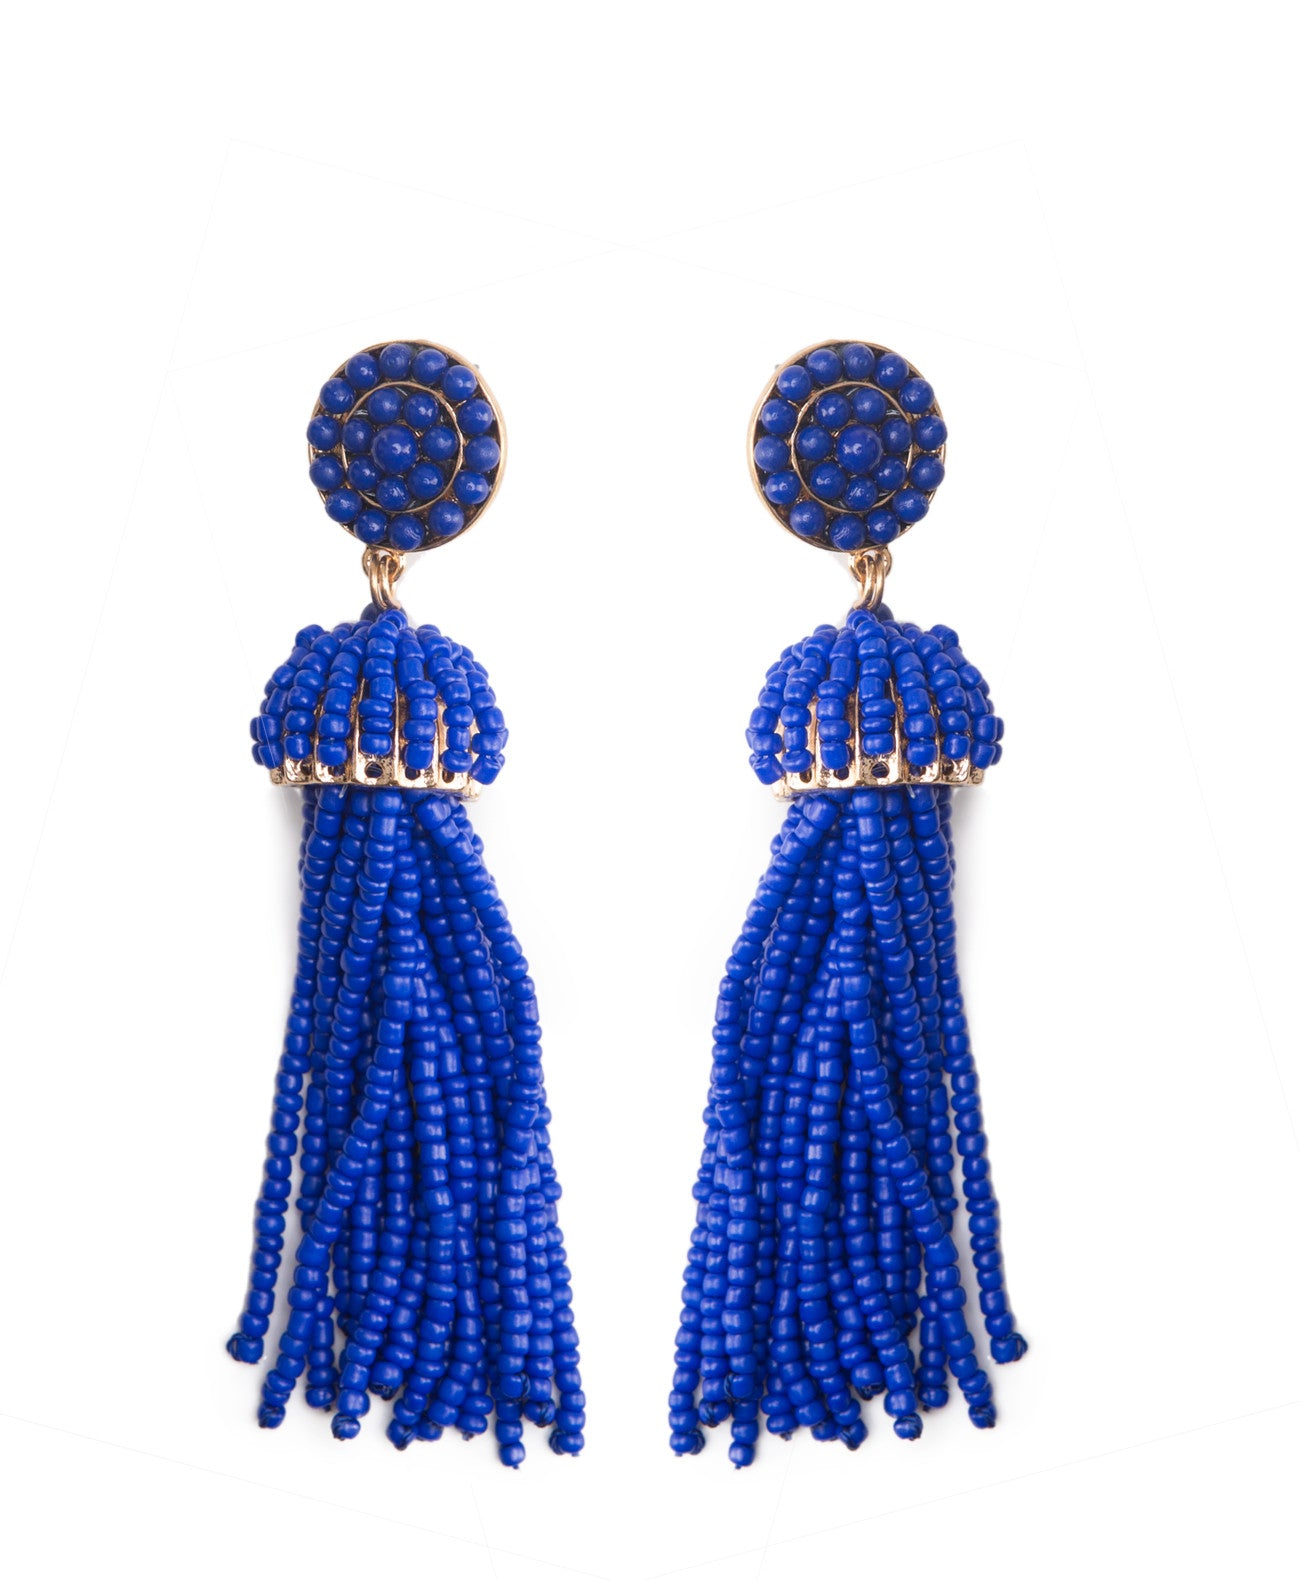 TE1797 Multi Strand Beaded Earrings - Koko & Palenki